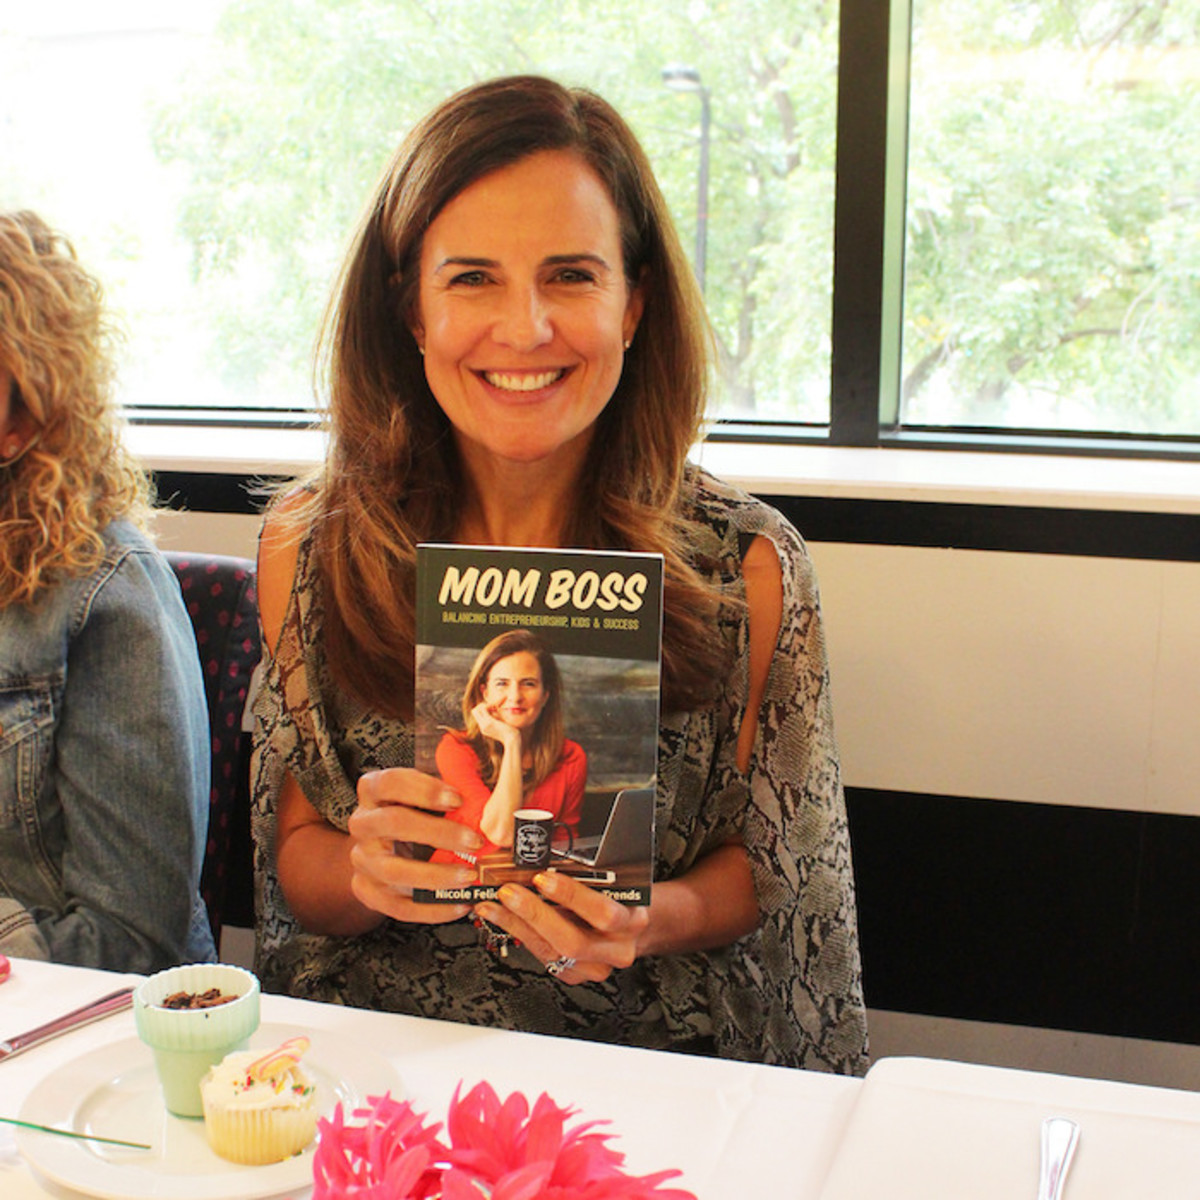 #MomBossBook Tour in Chicago